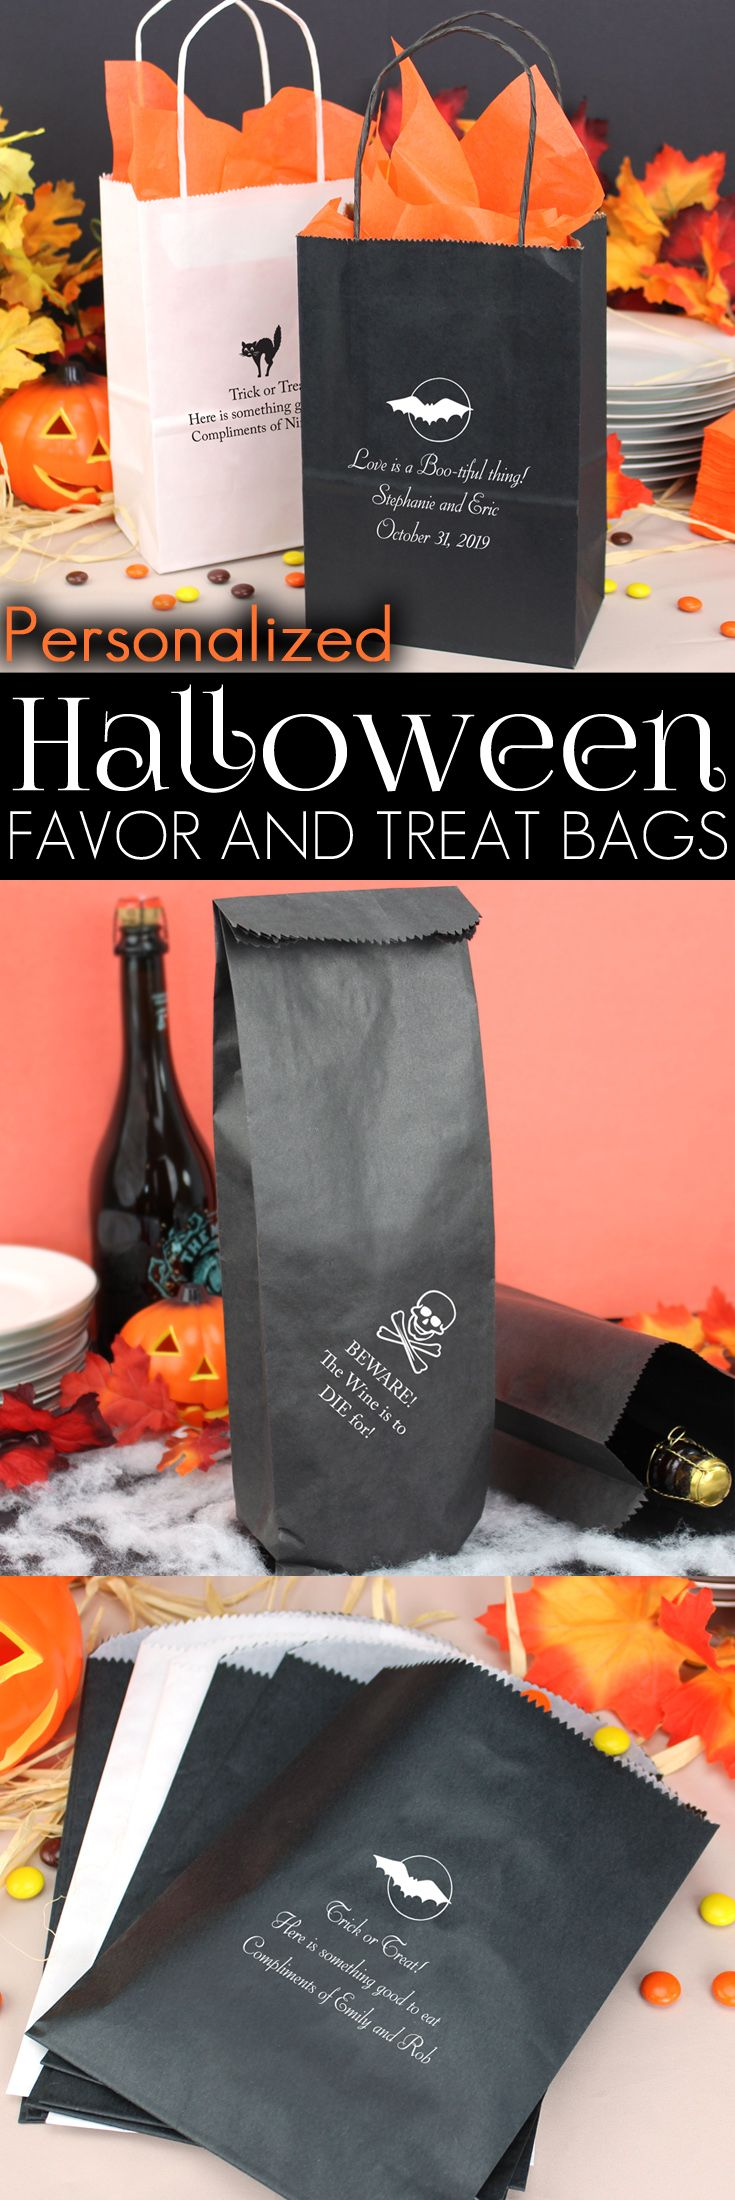 96 best images about Party ideas on Pinterest | Halloween games ...